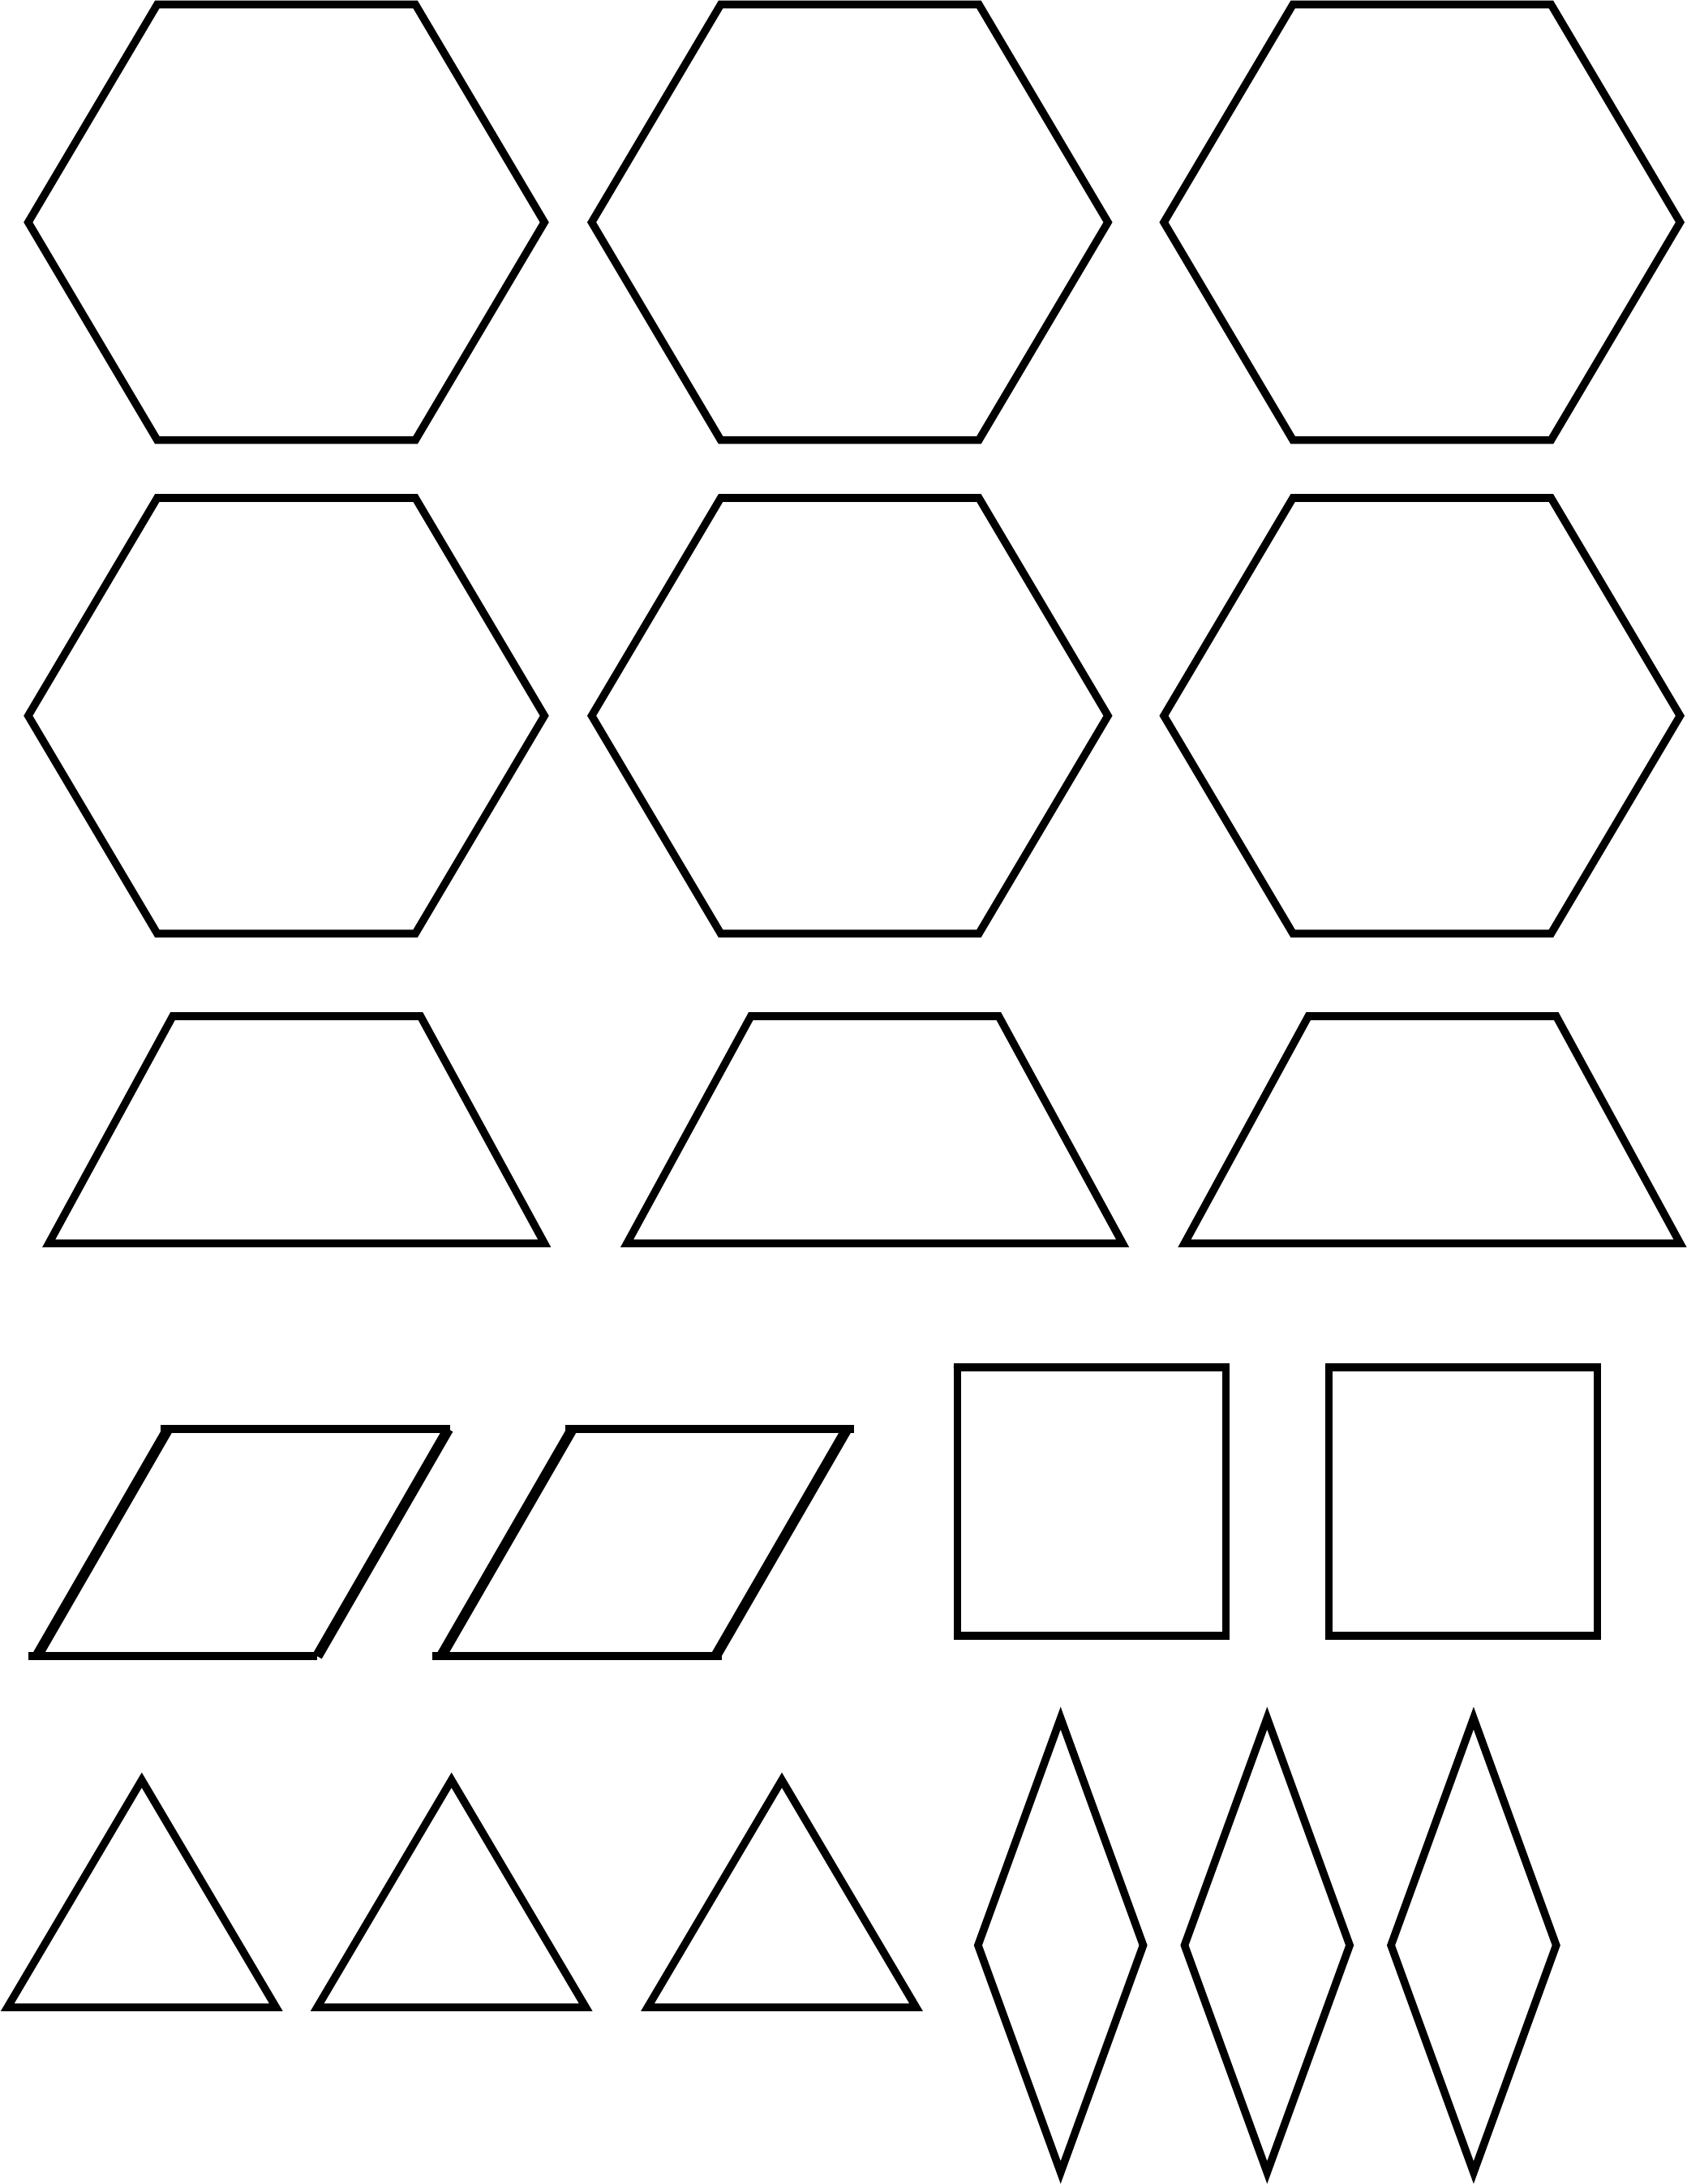 picture relating to Printable Pattern Block Templates titled Behavior Block Template Pattern Totally free Down load